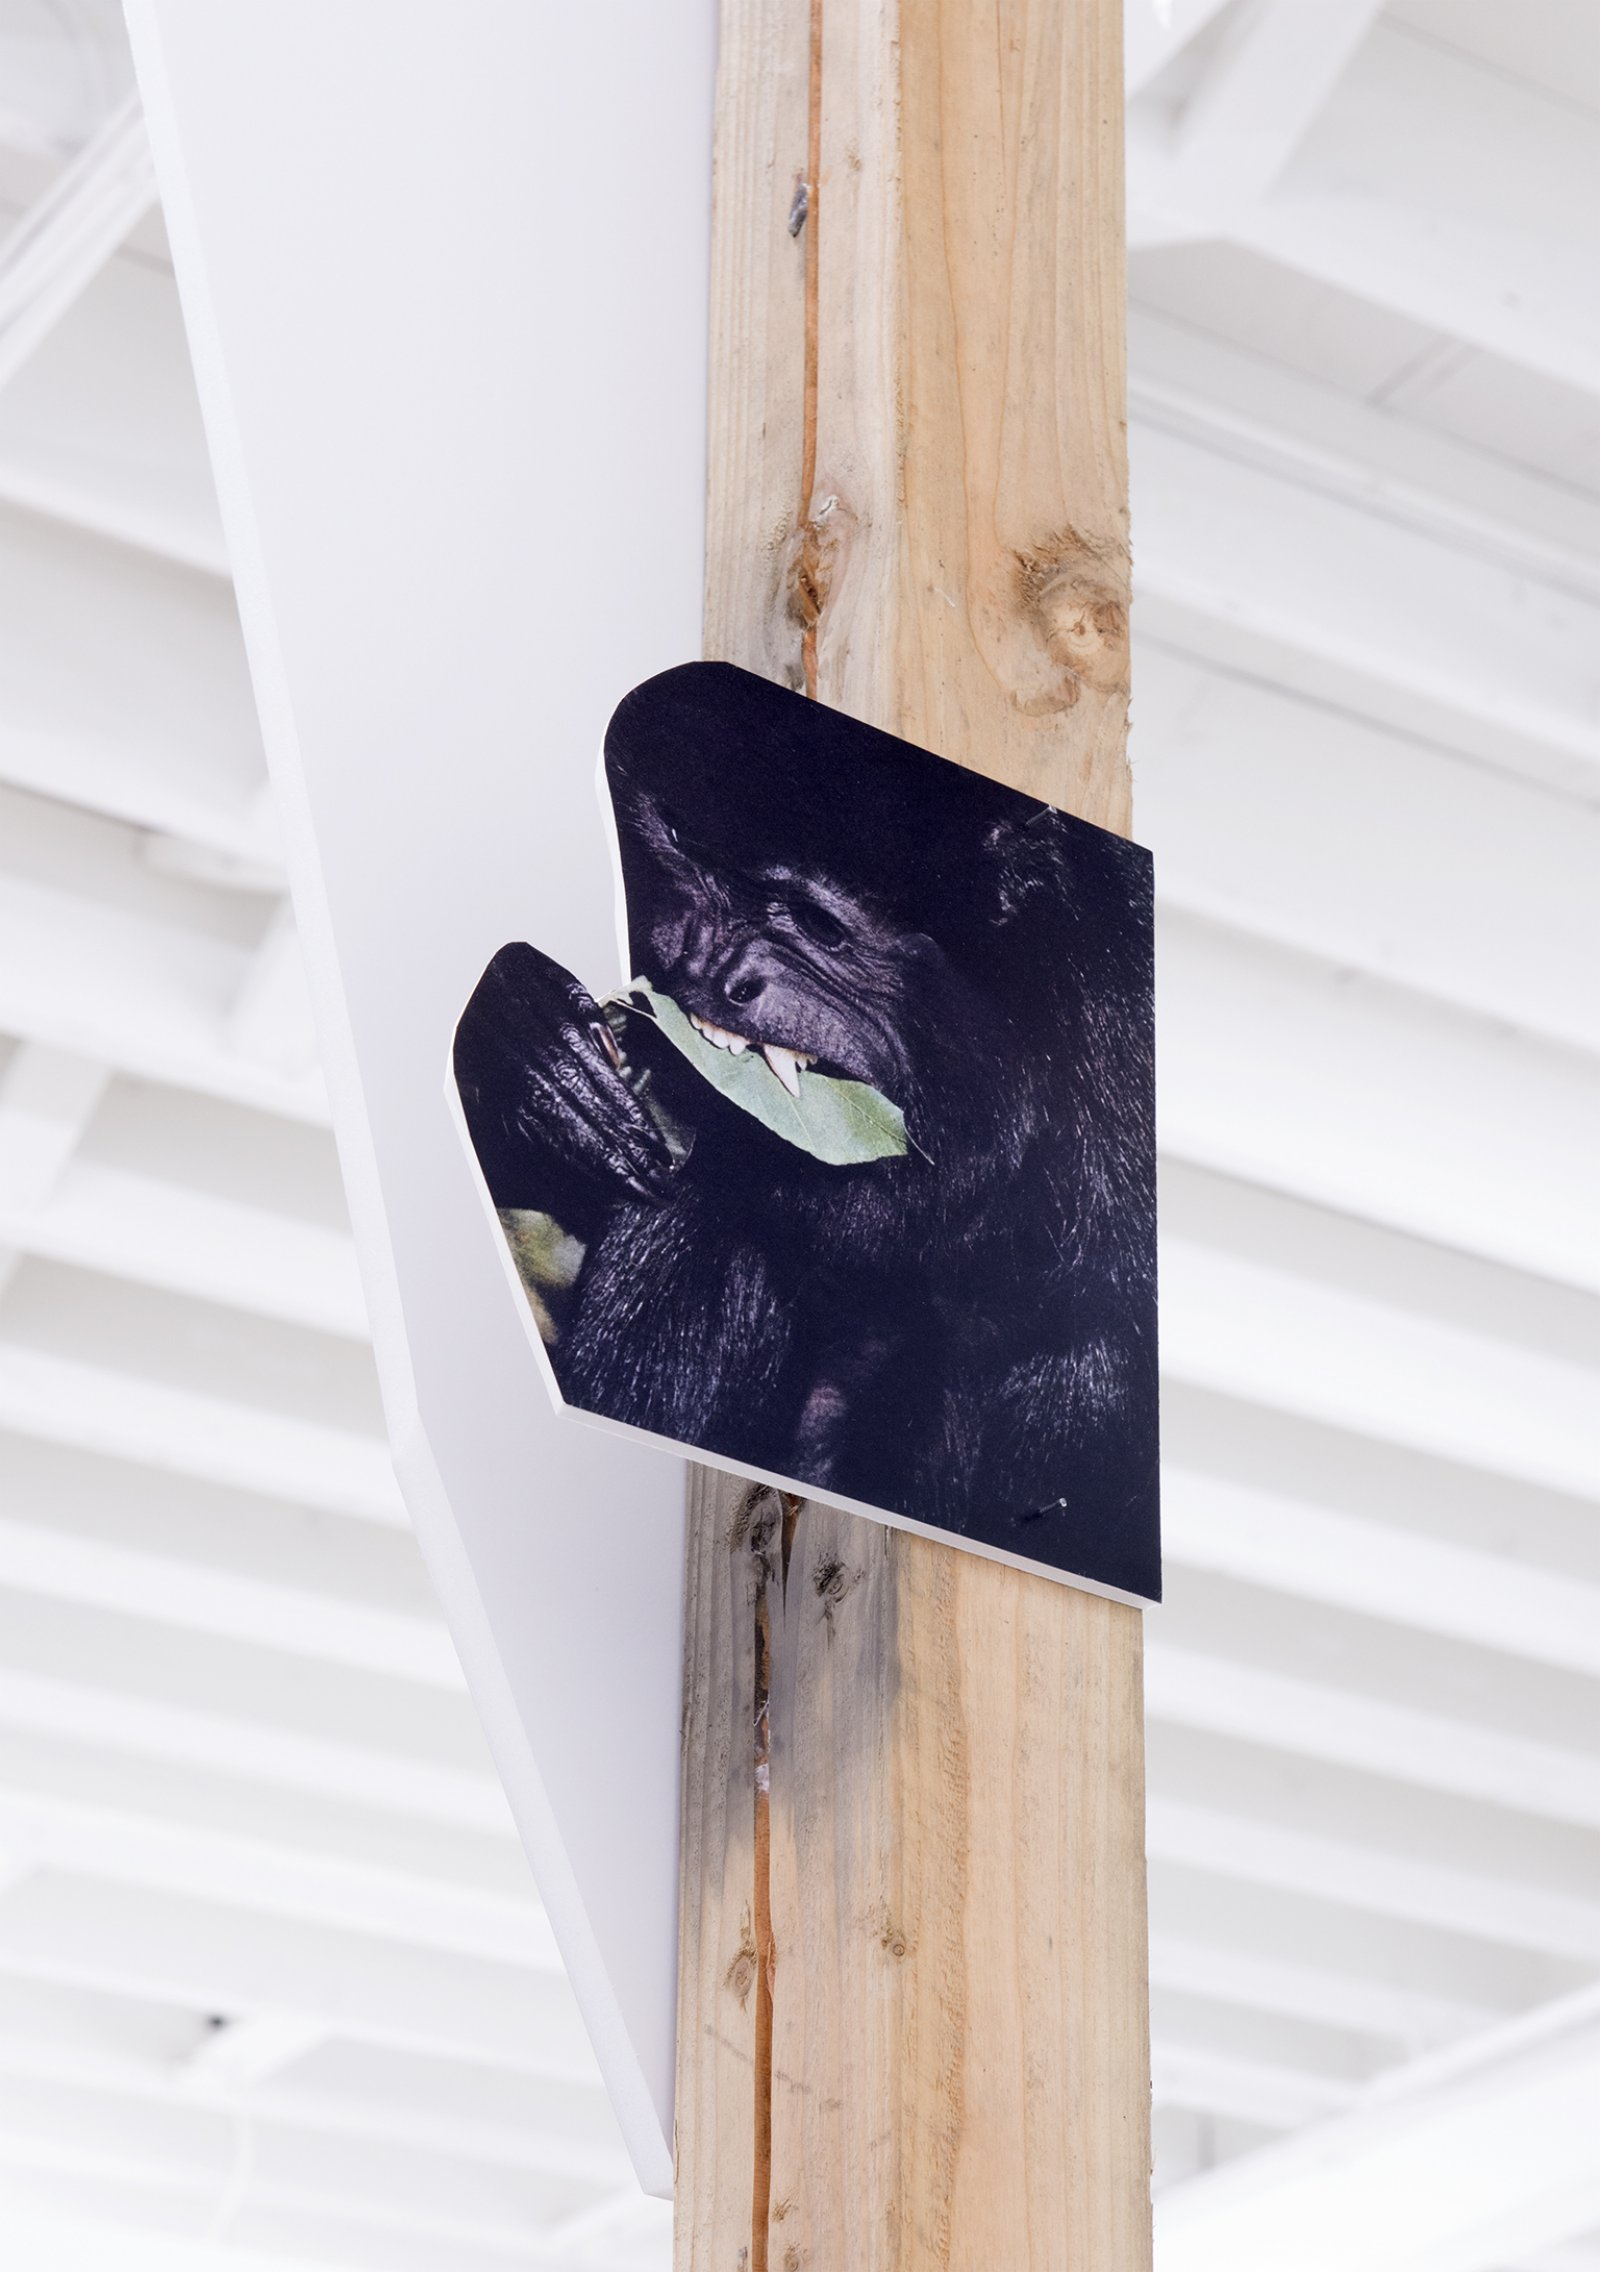 Geoffrey Farmer, In the dark pool the grass grows. In the grass there is night. Hold tight, and climb the tree, eating leaves then leap!(detail), 2014, douglas fir pole, 6 photographs mounted on foamcore, 200 x 4 x 4 in. (508 x 9 x 9 cm)